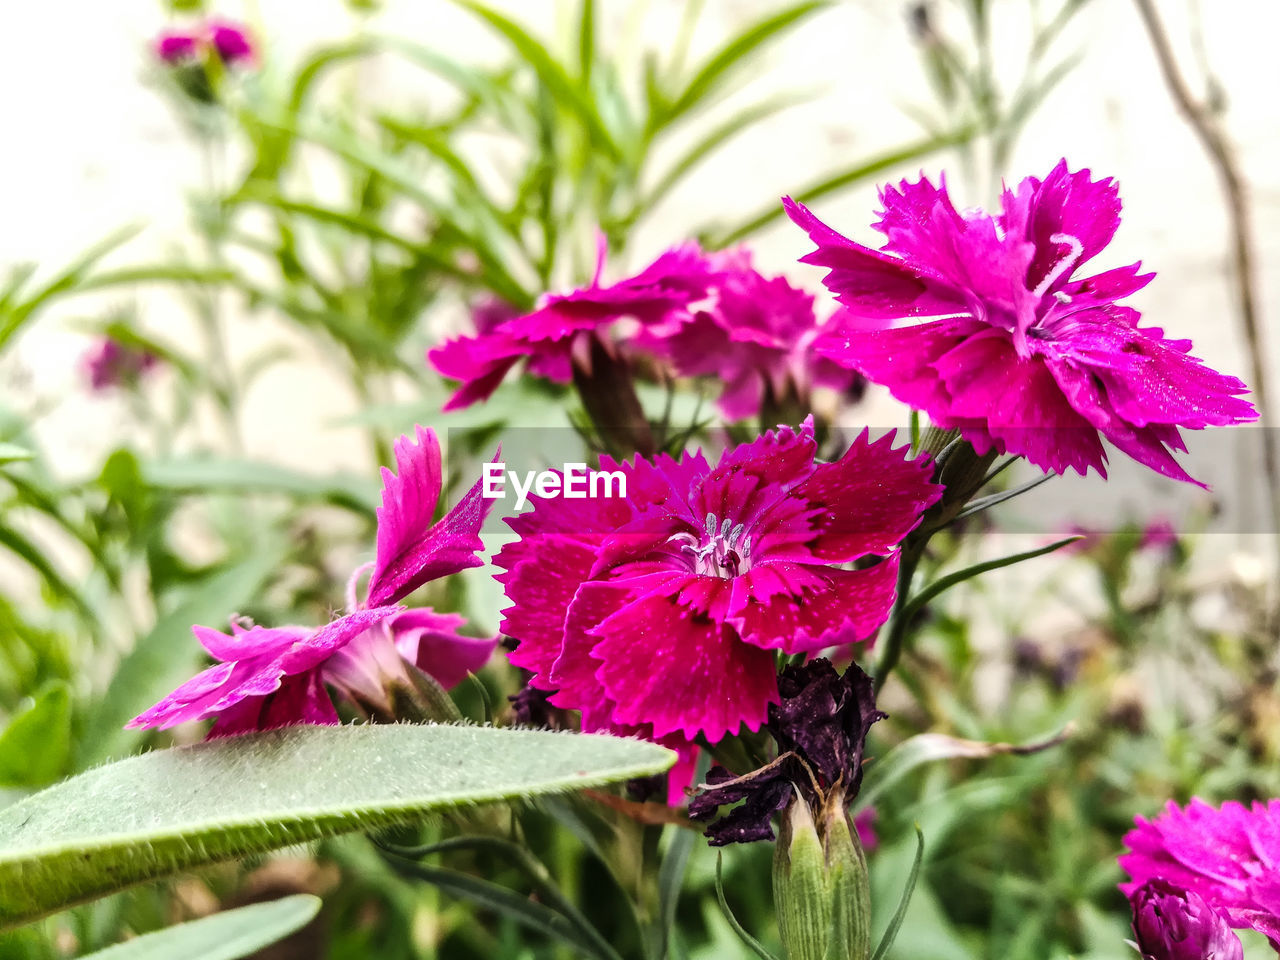 flower, fragility, petal, purple, beauty in nature, nature, freshness, growth, flower head, plant, pink color, no people, focus on foreground, day, close-up, blooming, outdoors, petunia